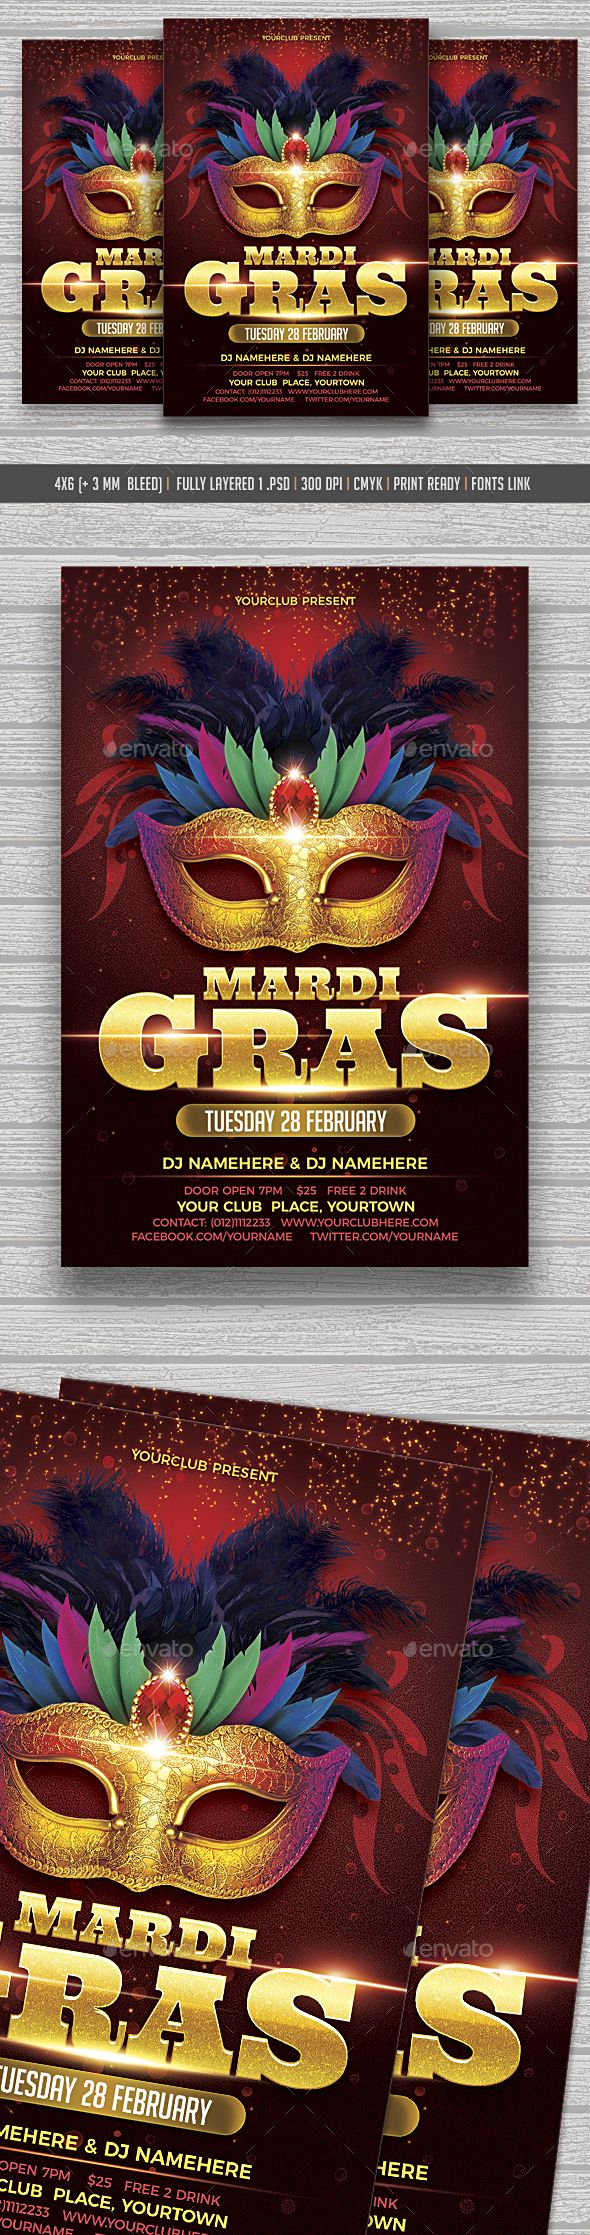 best images about flyers party templates ideas collection mardi gras flyer